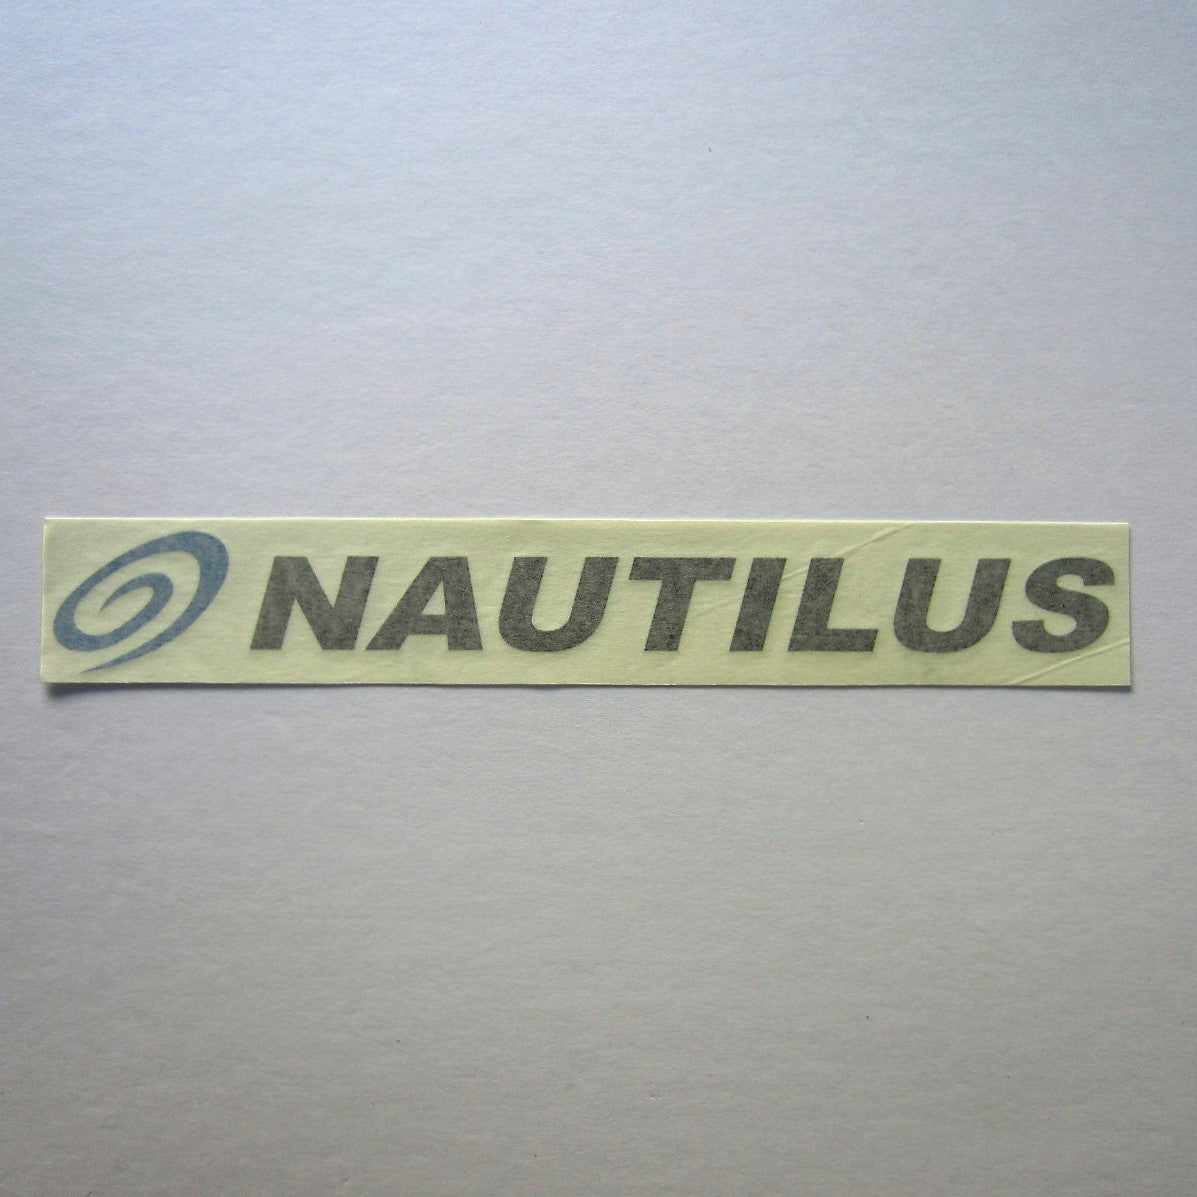 Nautilus Decal Black w/ Blue Swoosh